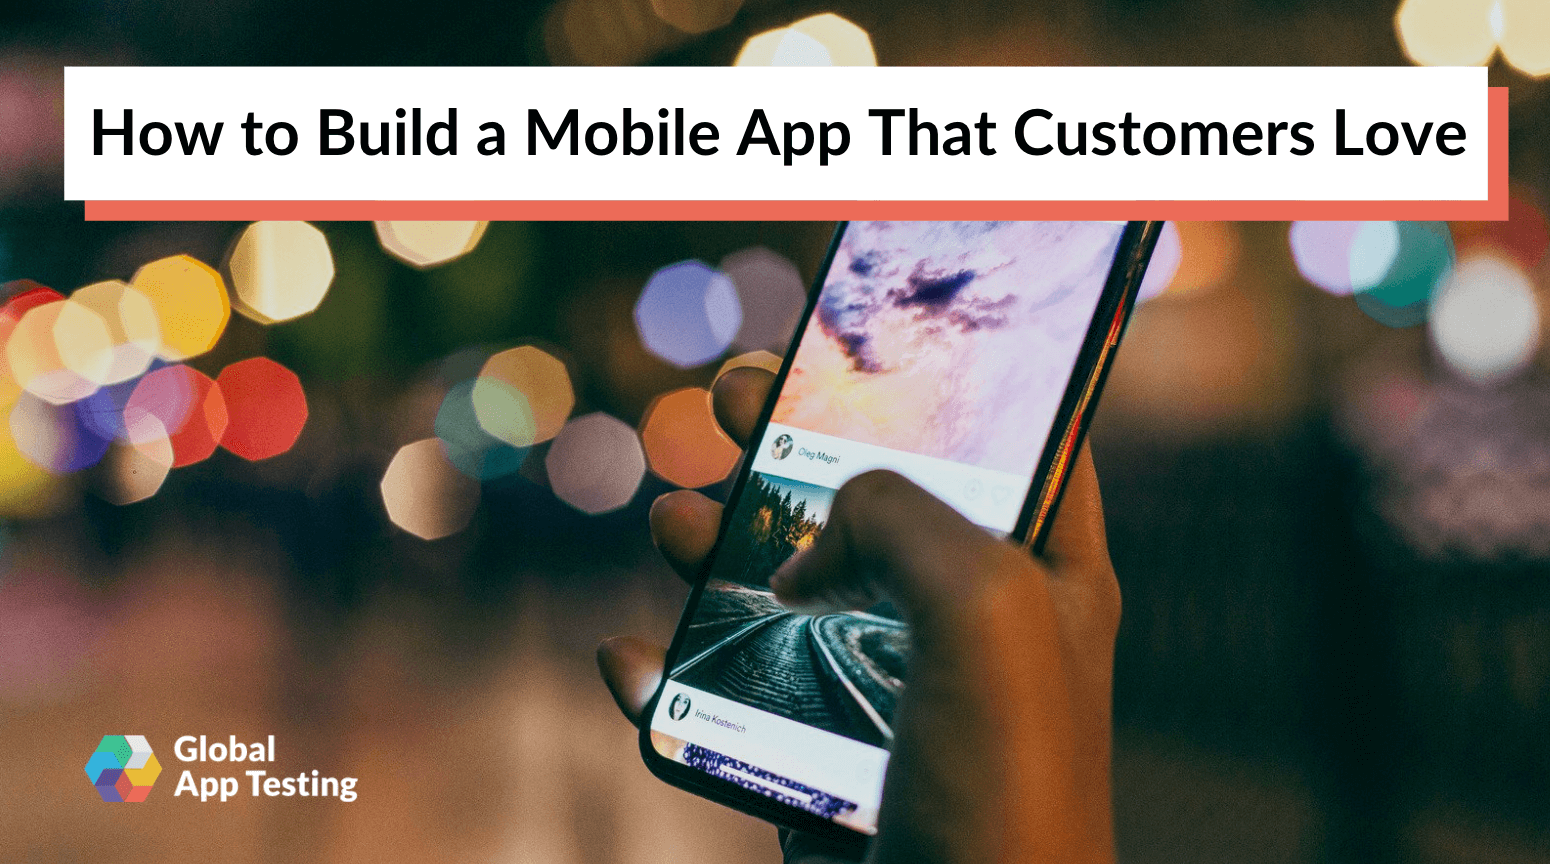 How to Build a Mobile App That Customers Love